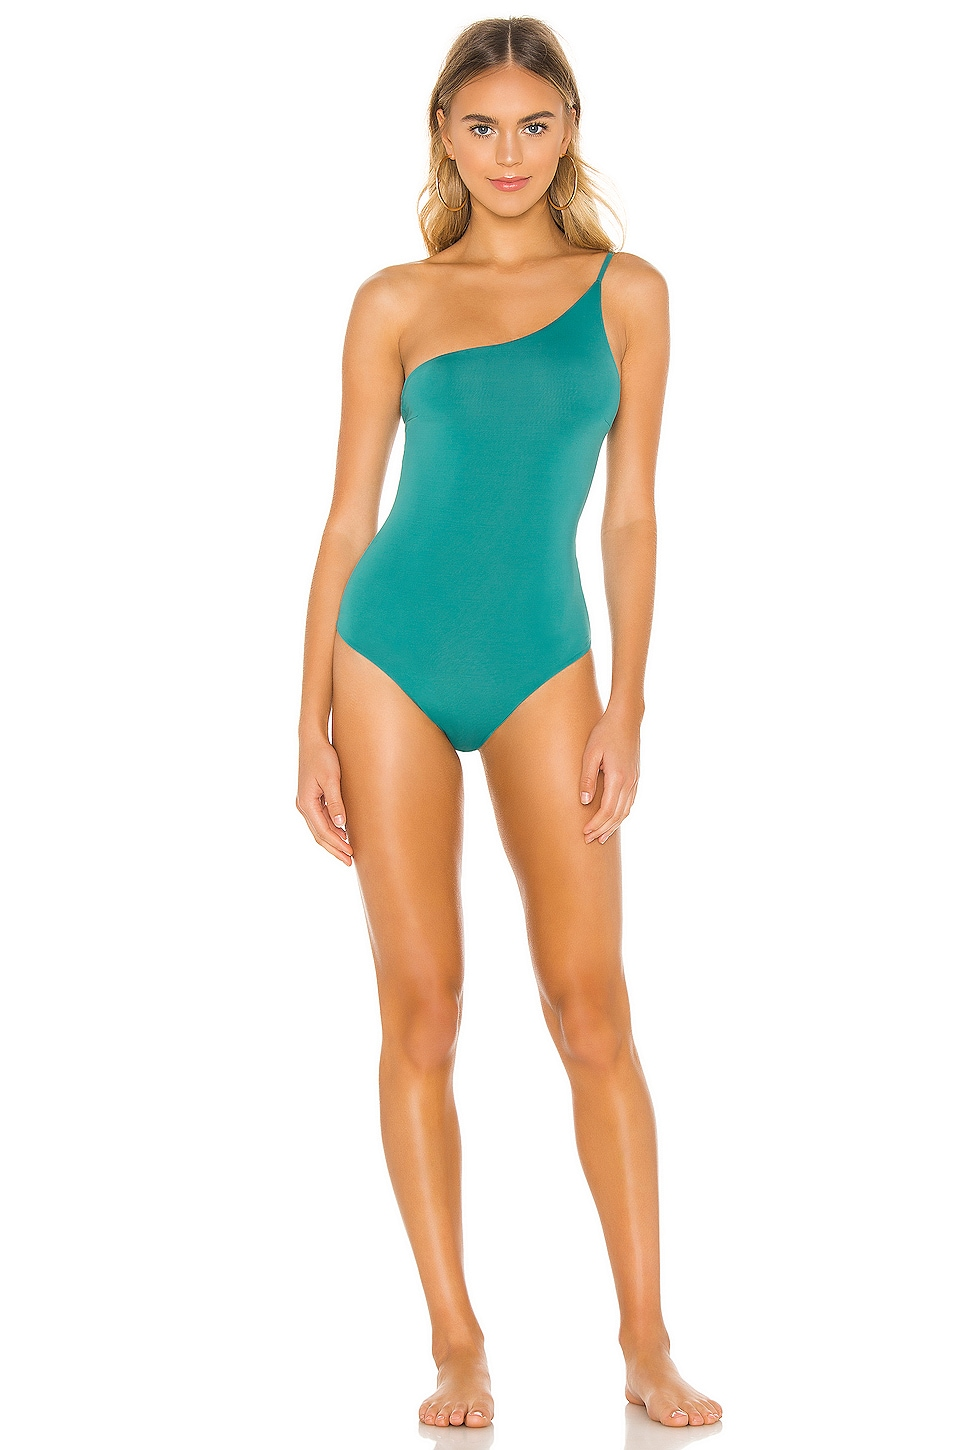 HAIGHT. One Shoulder Line Maillot in Basil